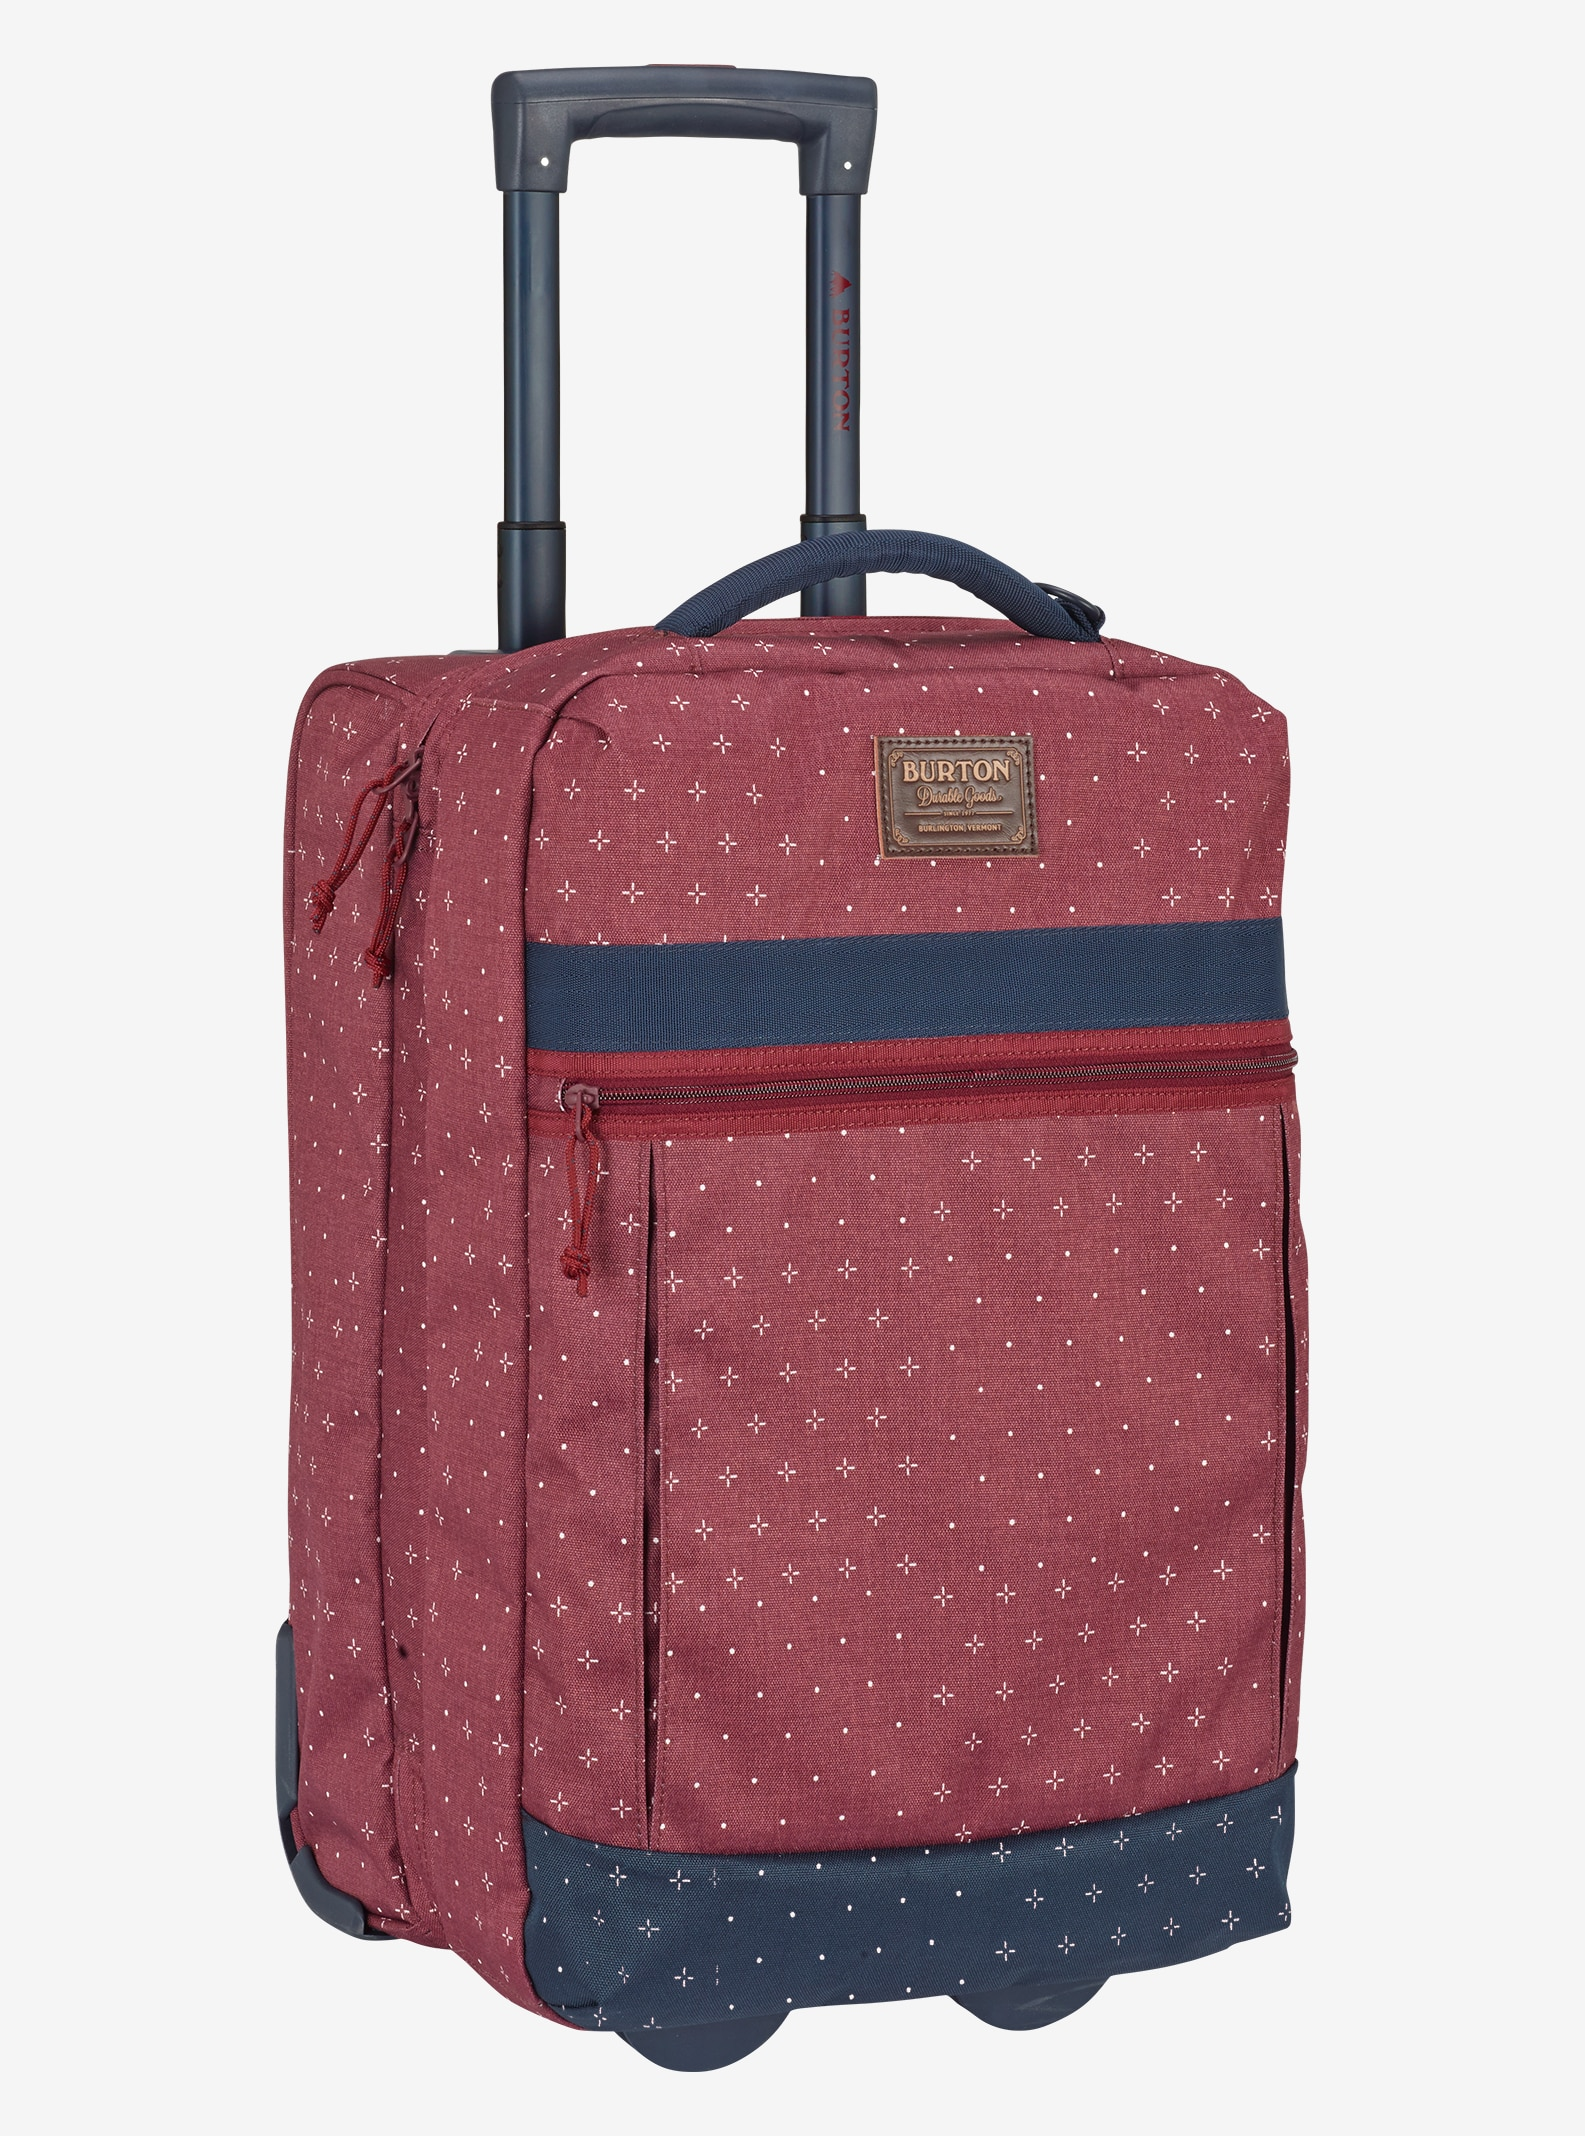 Burton Overnighter Roller Travel Bag shown in Mandana Print